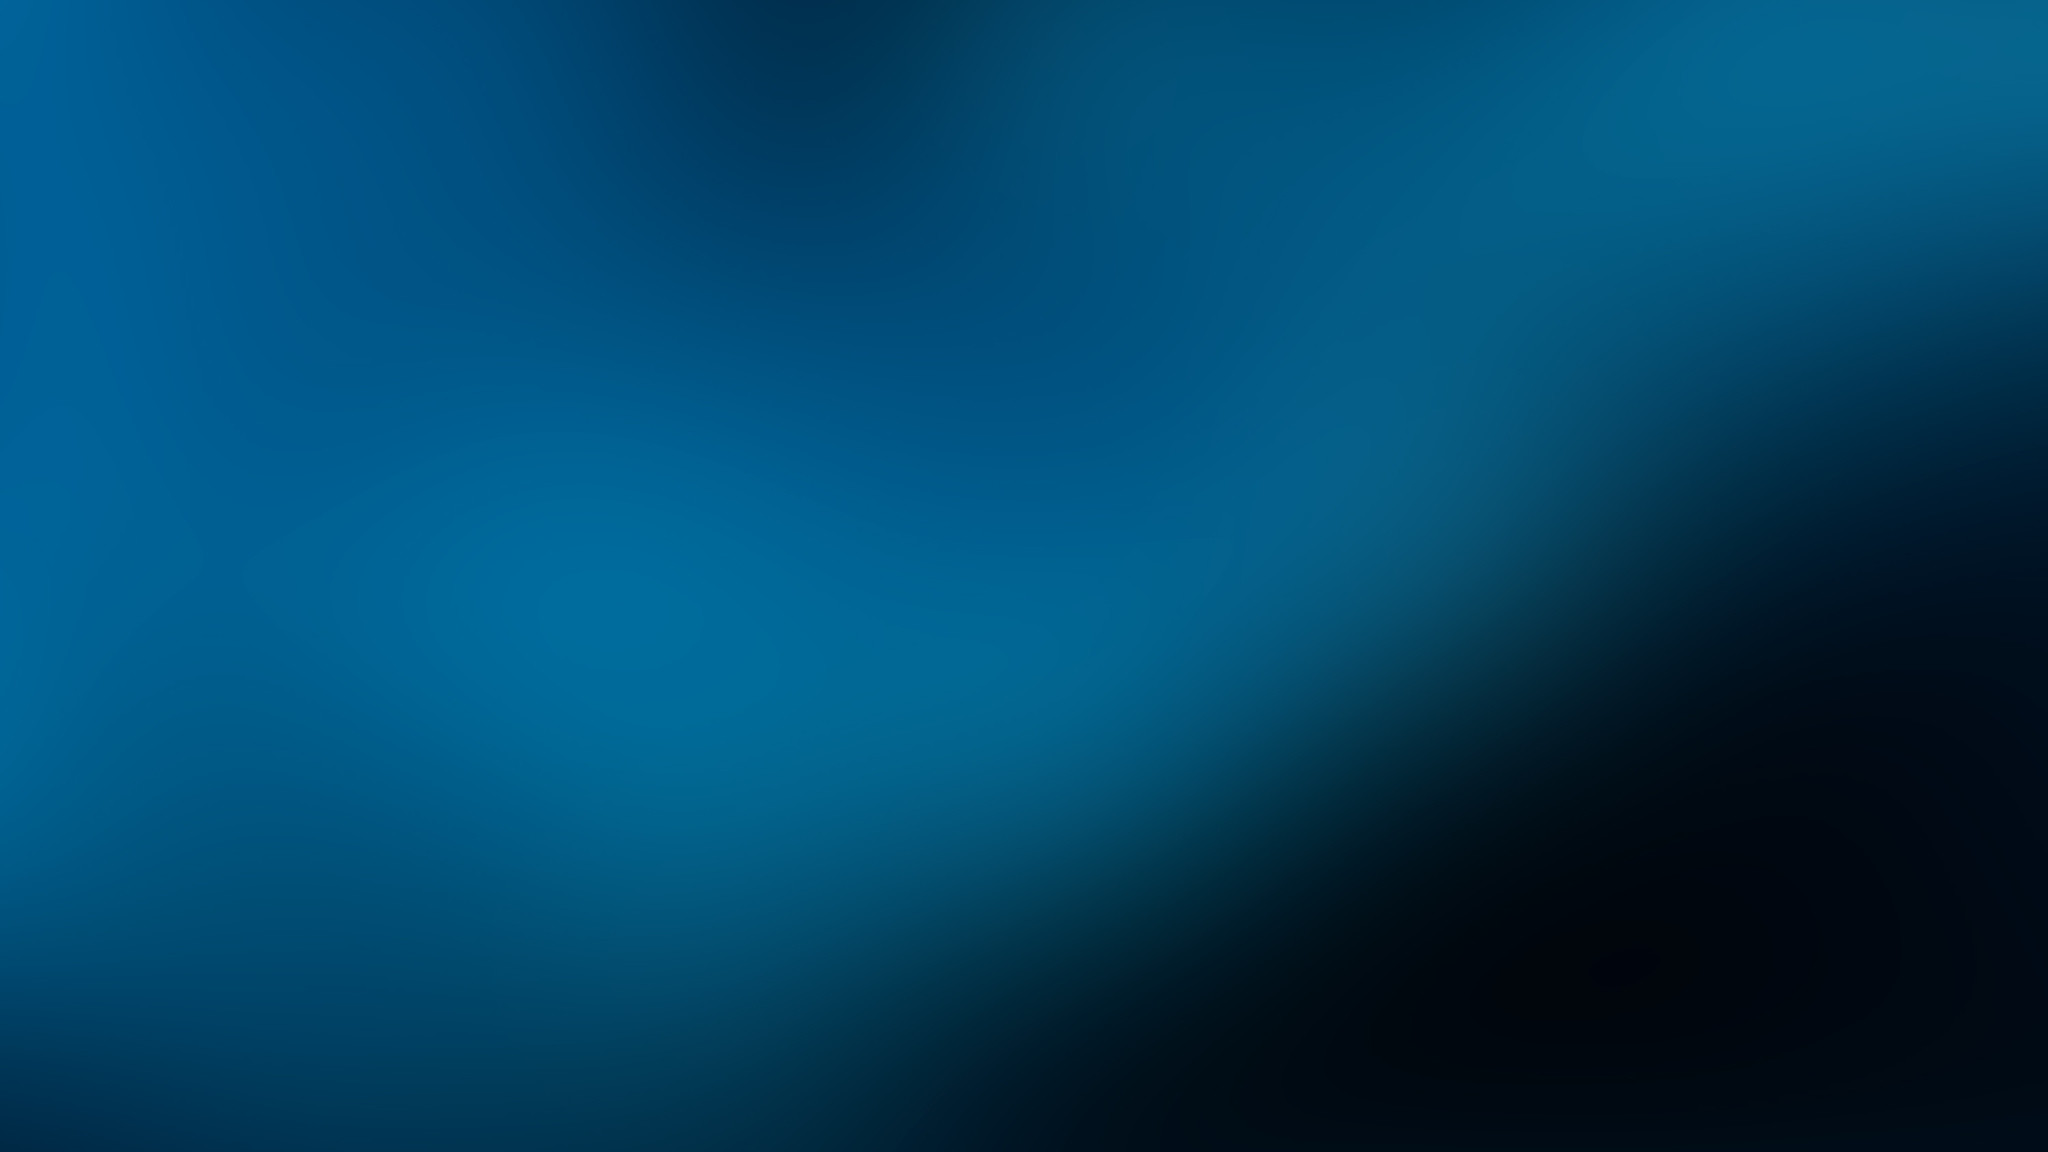 2048x1152 blue-abstract-simple-background-qs.jpg